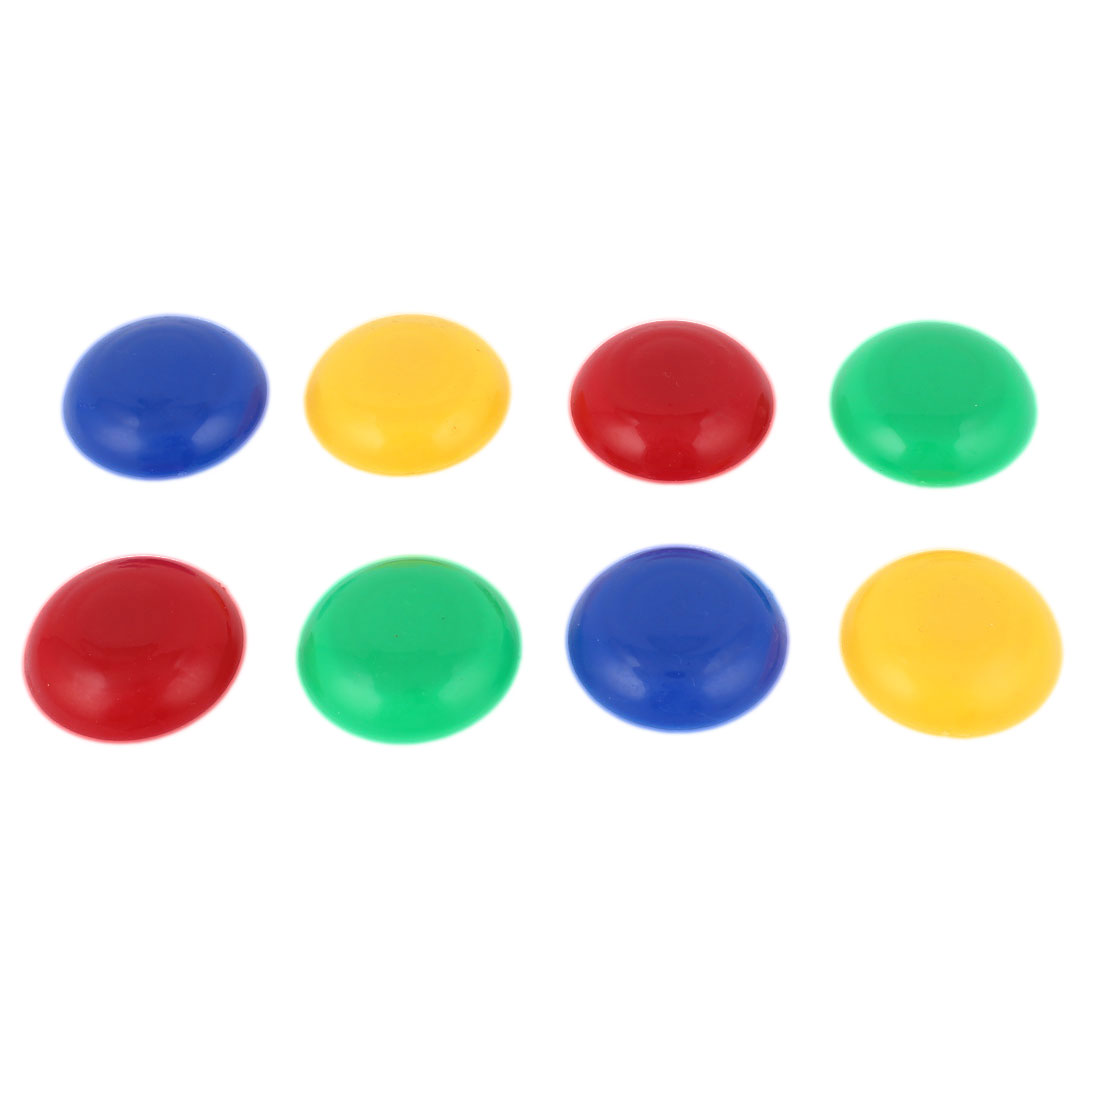 8 Pcs 40mm Dia Assorted Color Plastic Round Blackboard Whiteboard Washing Machine Fridge Magnetic Sticker